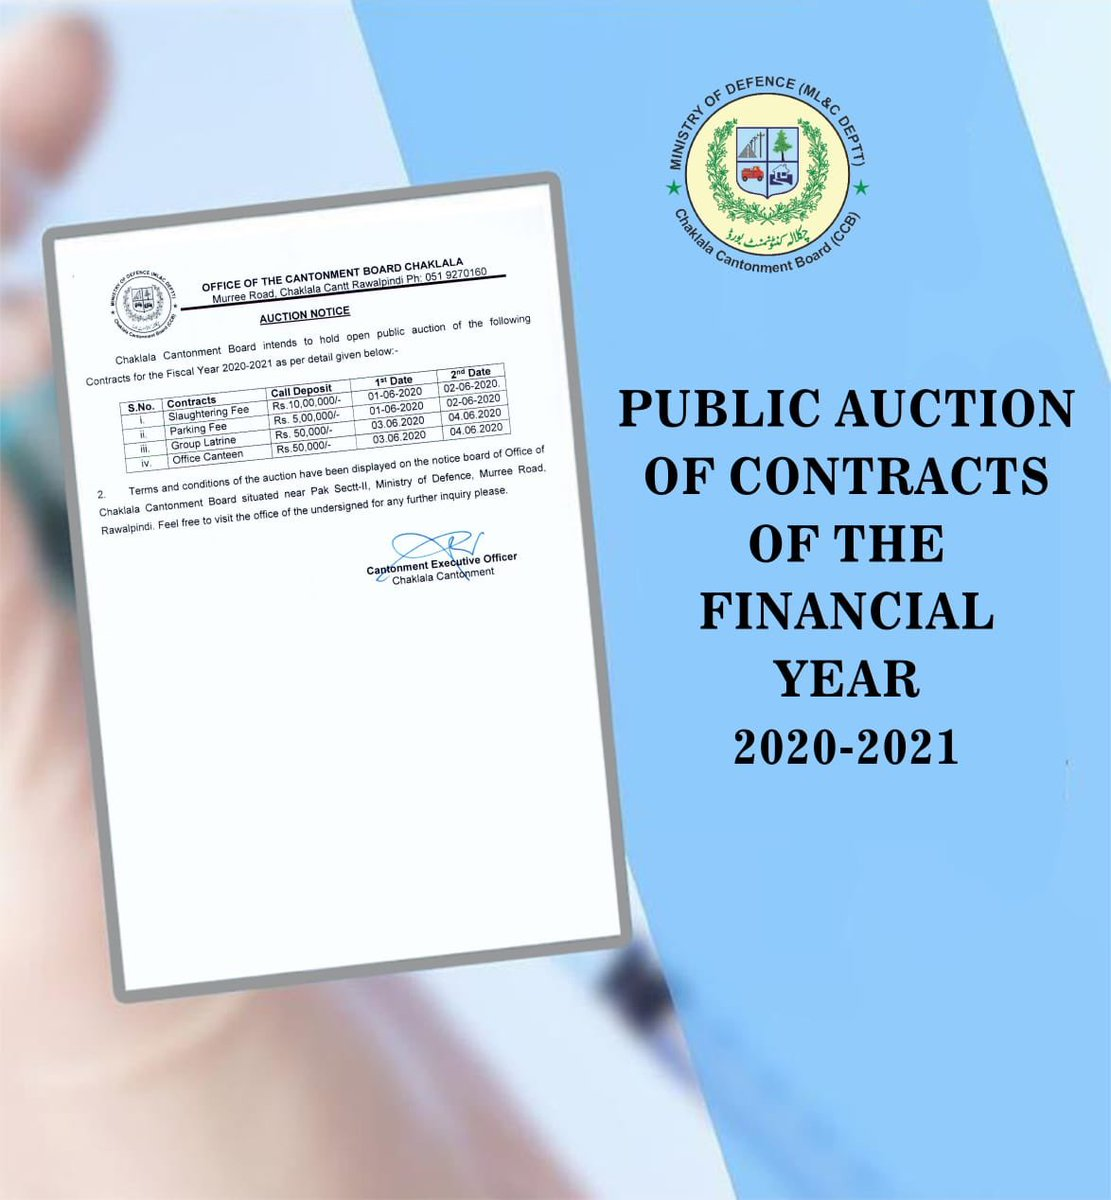 Public Auction of Contracts of the FY 2020-2021   #CBCARE #CCB #Chaklala #Rawalpindi #Rawalpindians pic.twitter.com/XjKt1x9sN6